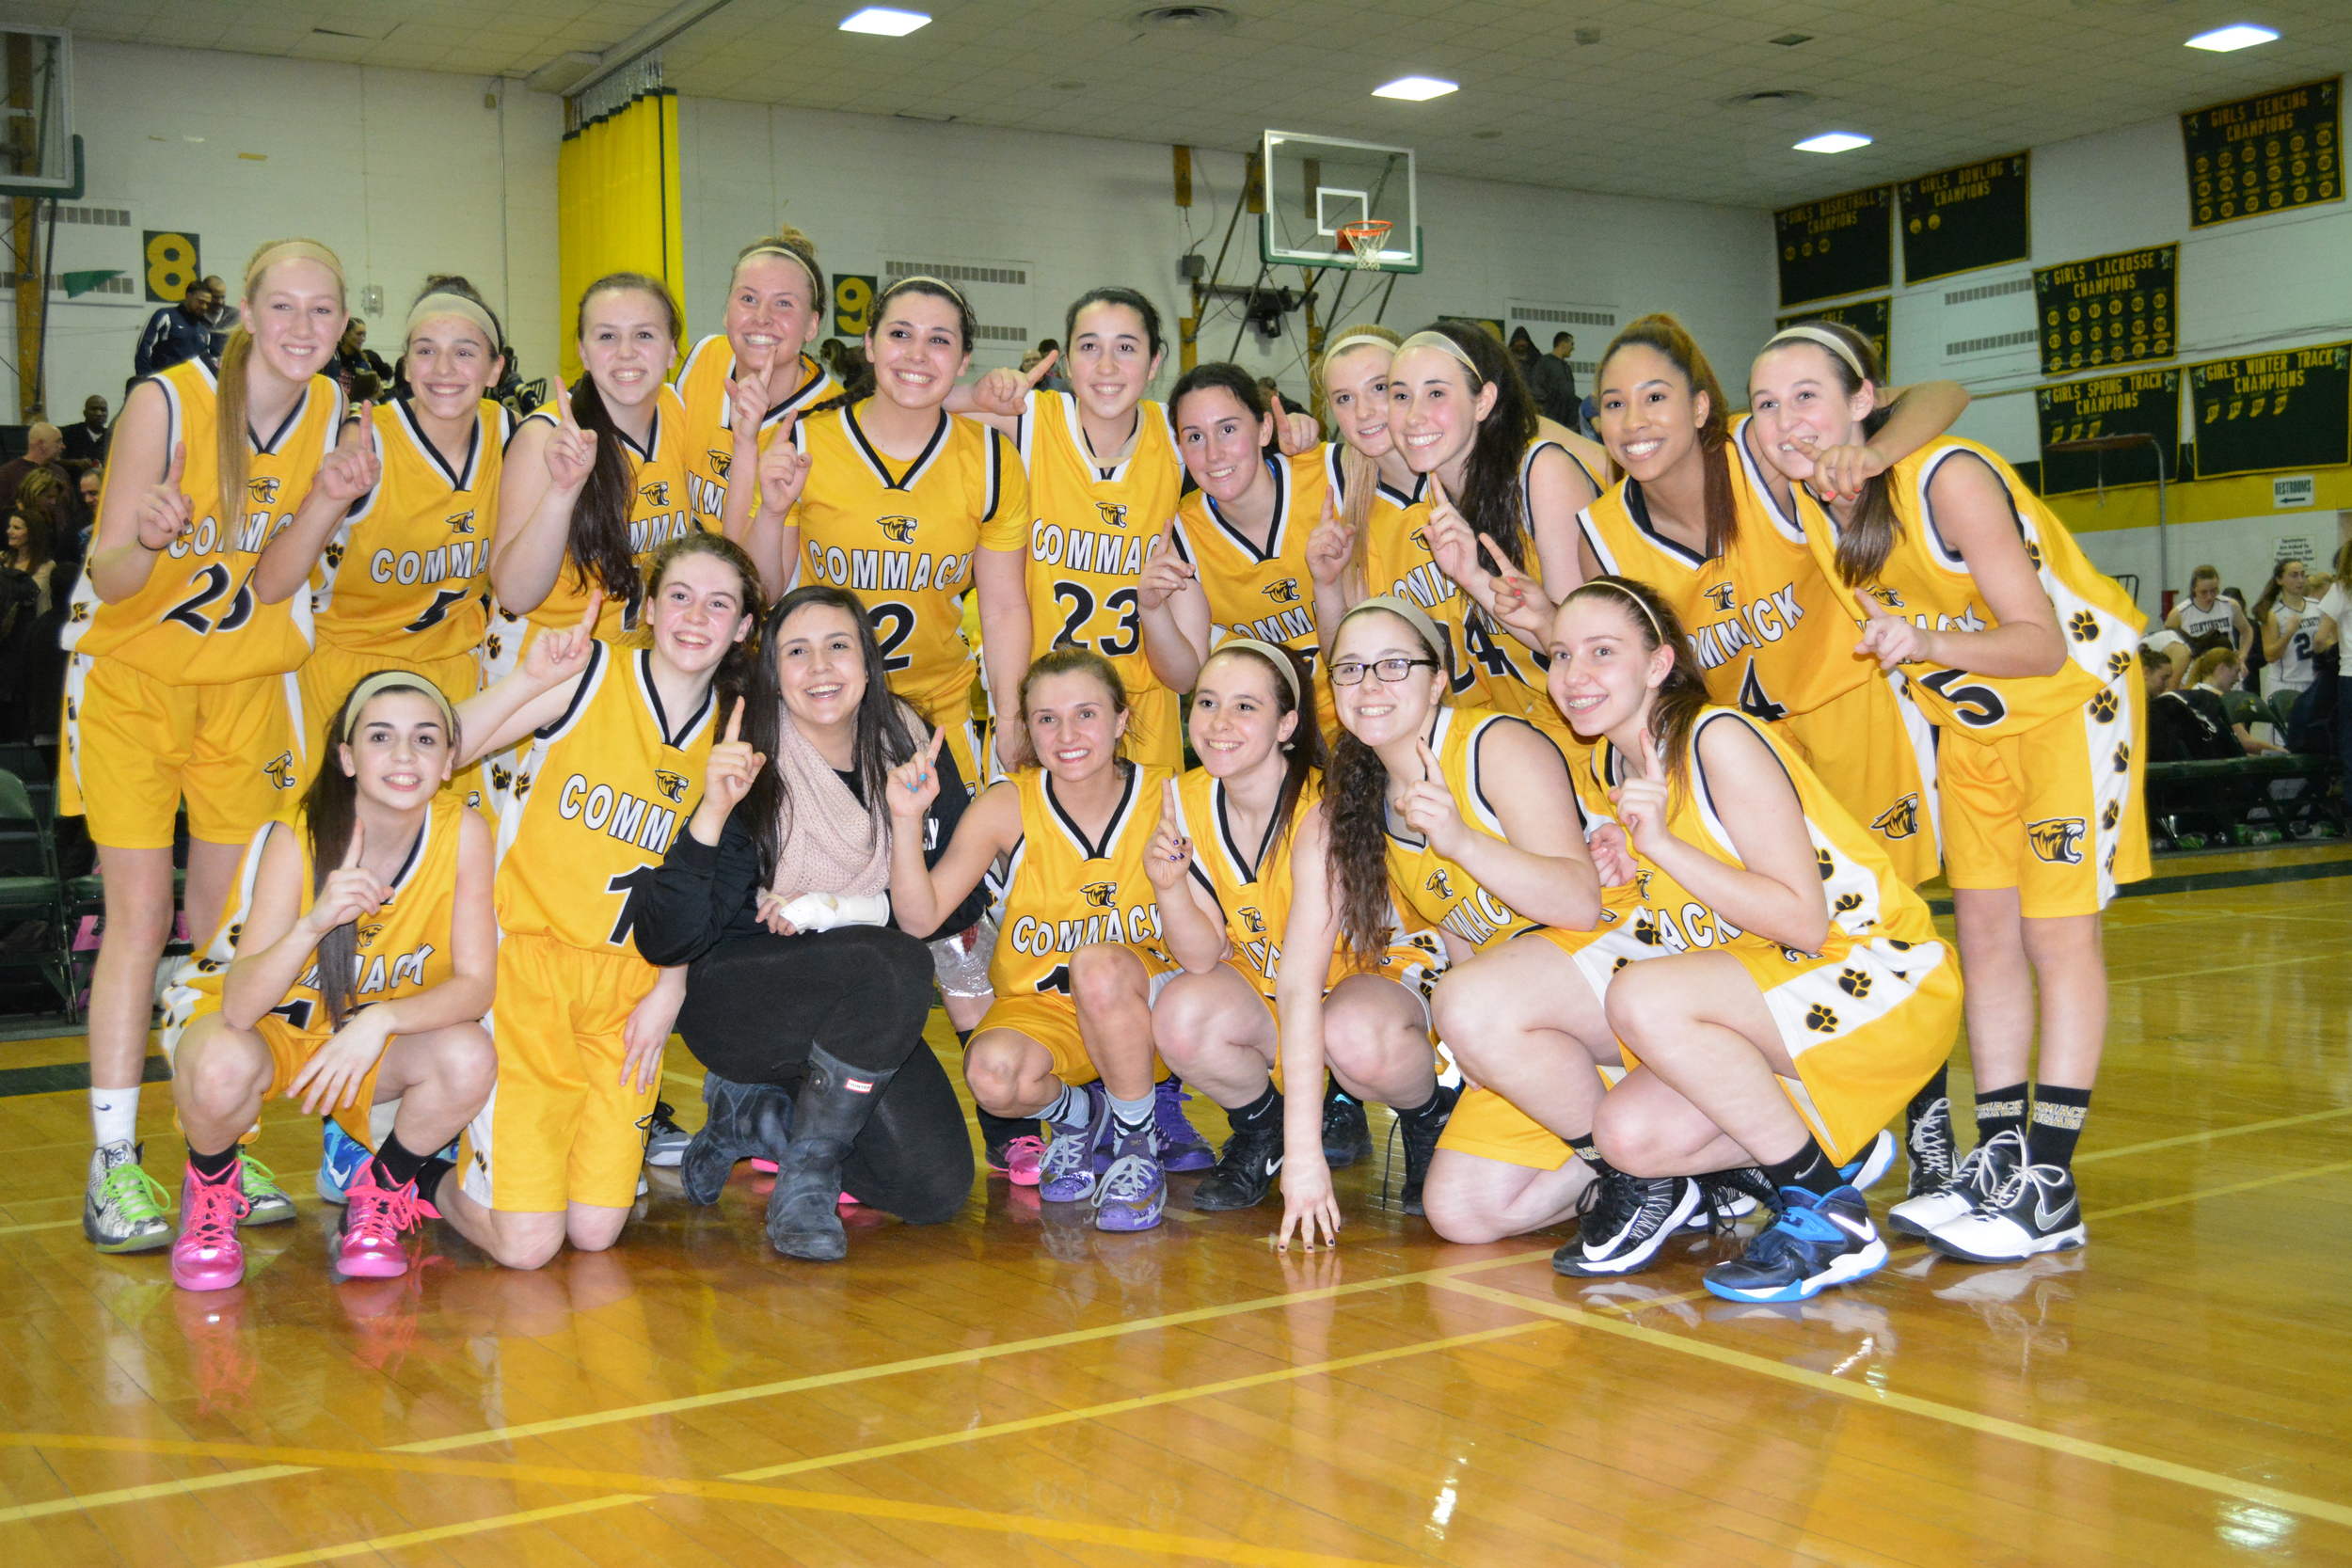 Meet the 2015 Suffolk Class AA champions: the Lady Cougars of Commack.